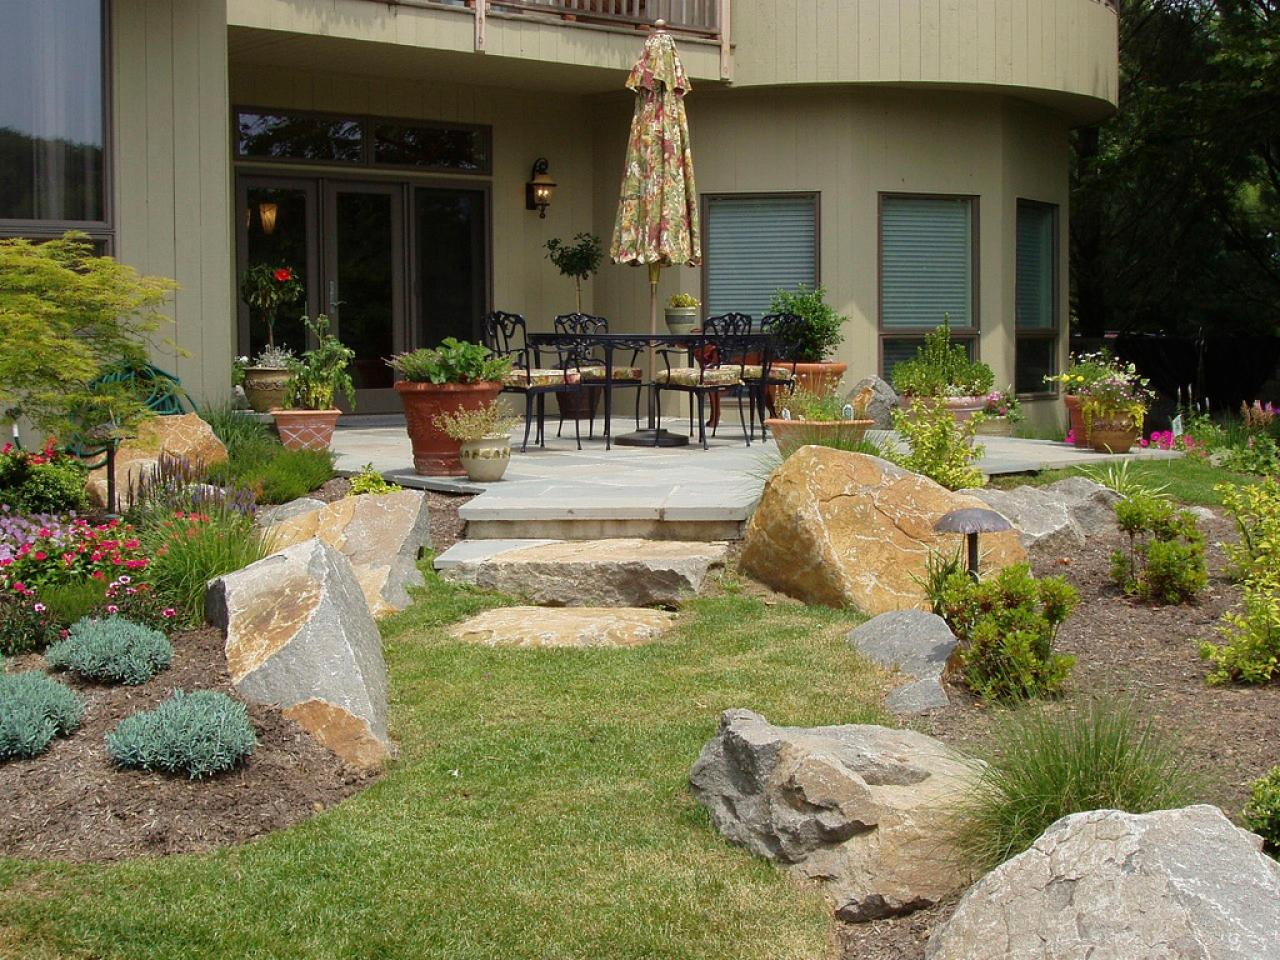 Patio landscaping ideas hgtv for Patio garden ideas photos